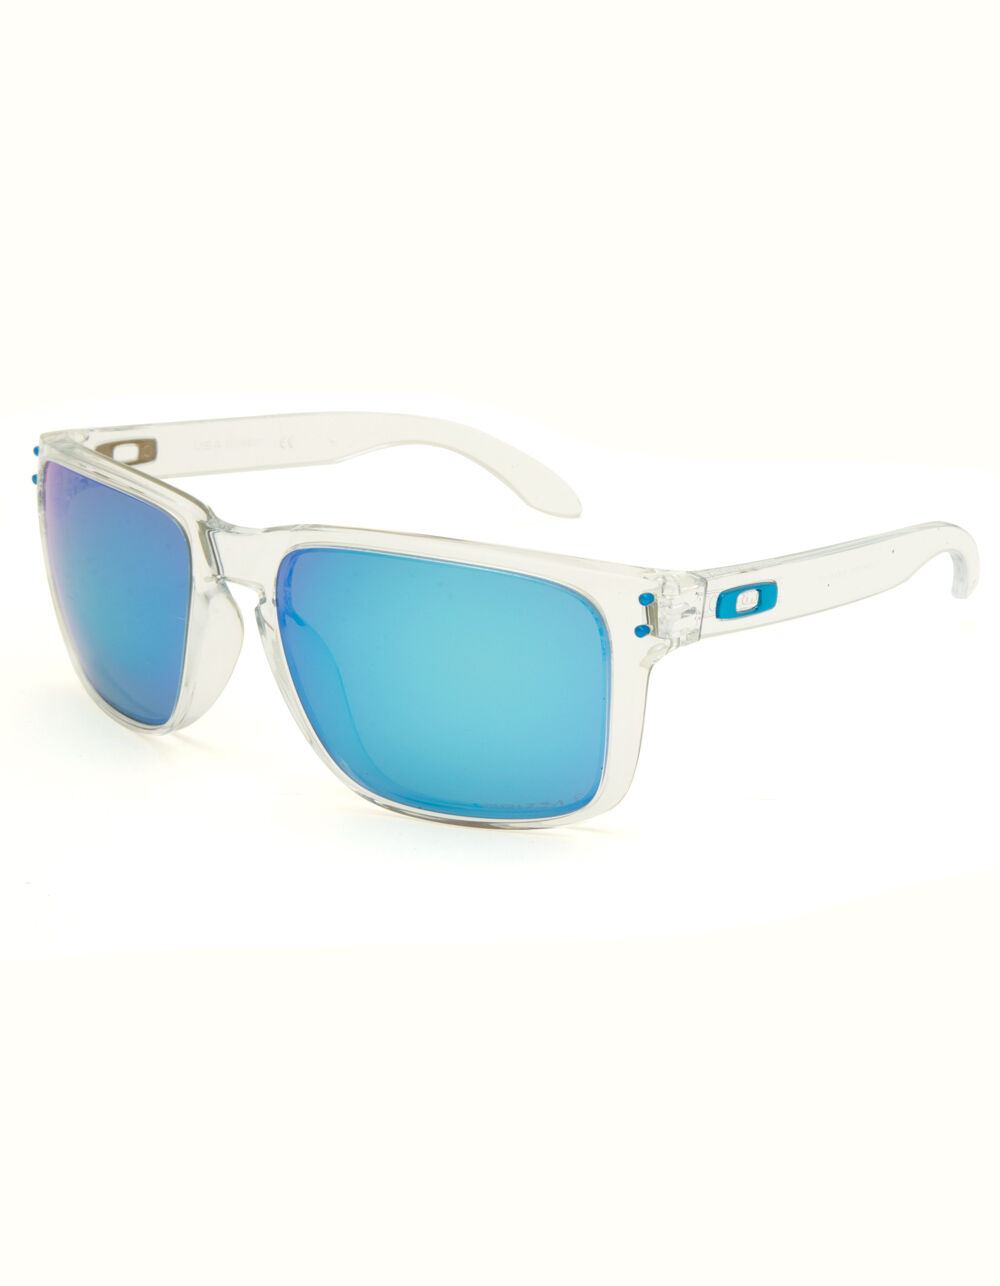 OAKLEY Holbrook XL Clear & Blue Sunglasses